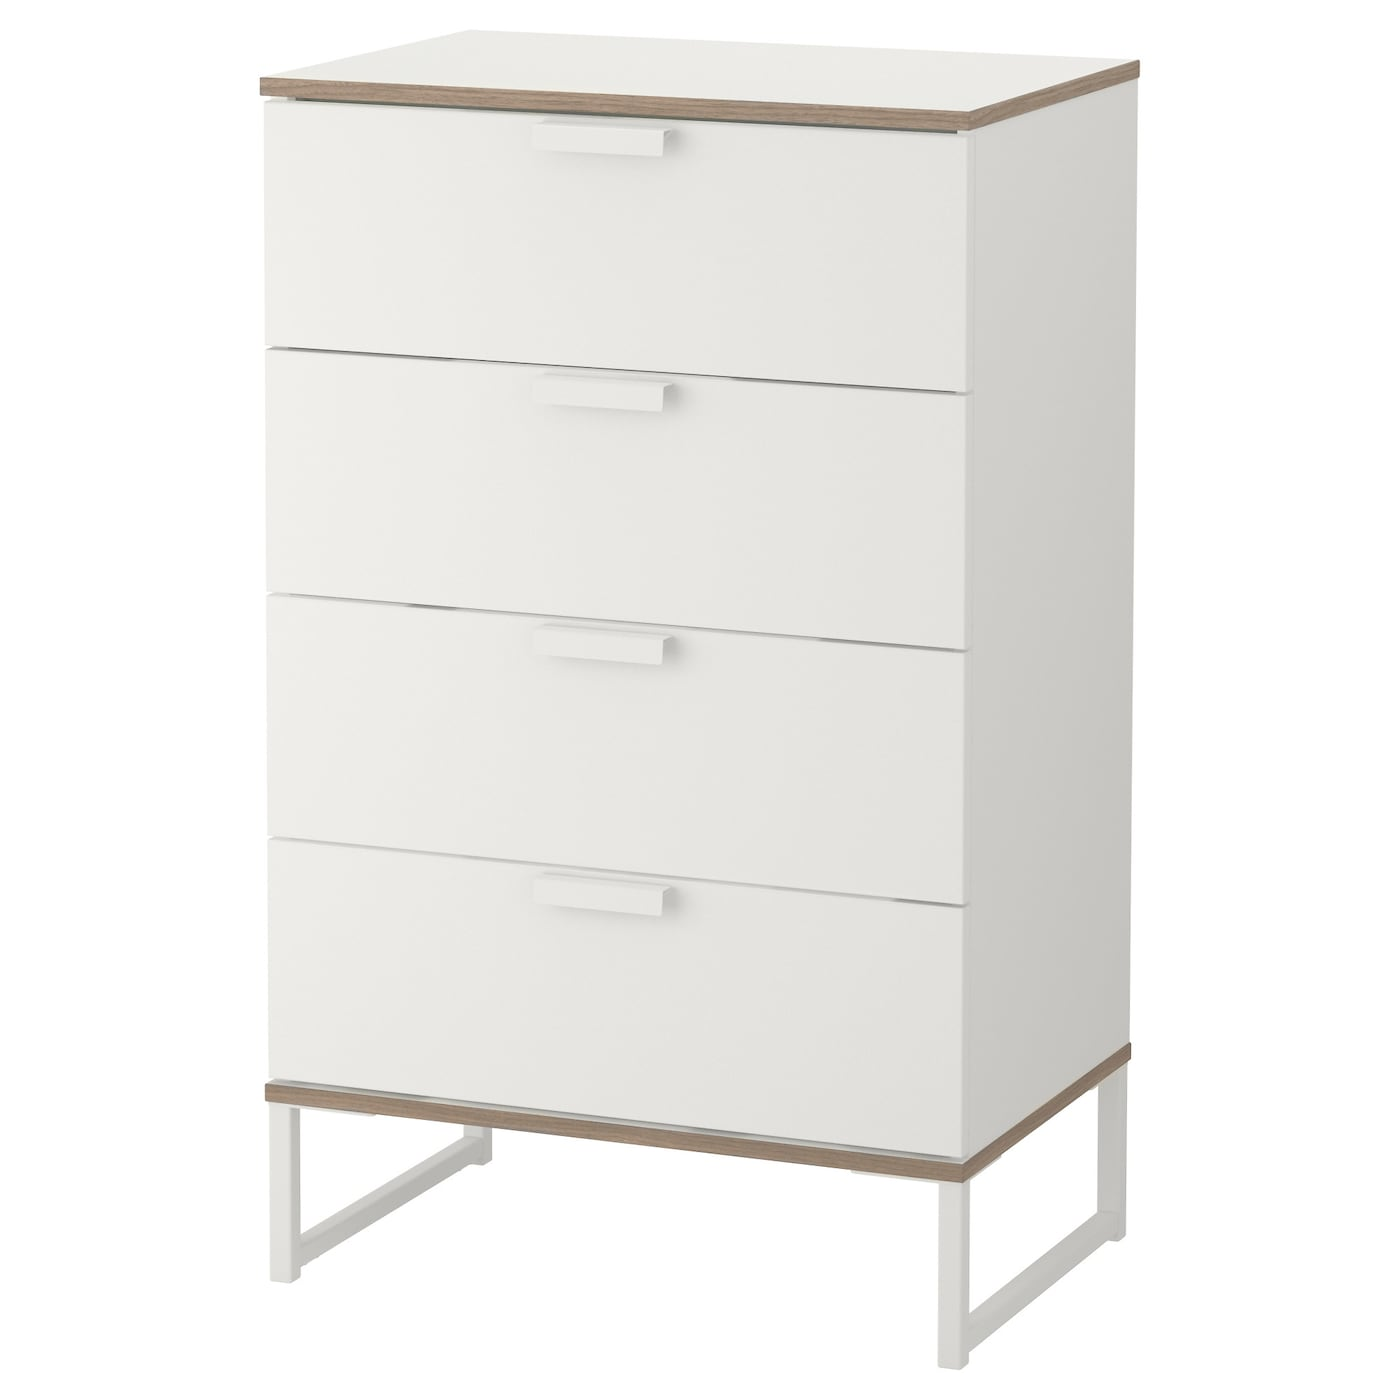 IKEA TRYSIL chest of 4 drawers Smooth running drawers with pull-out stop.